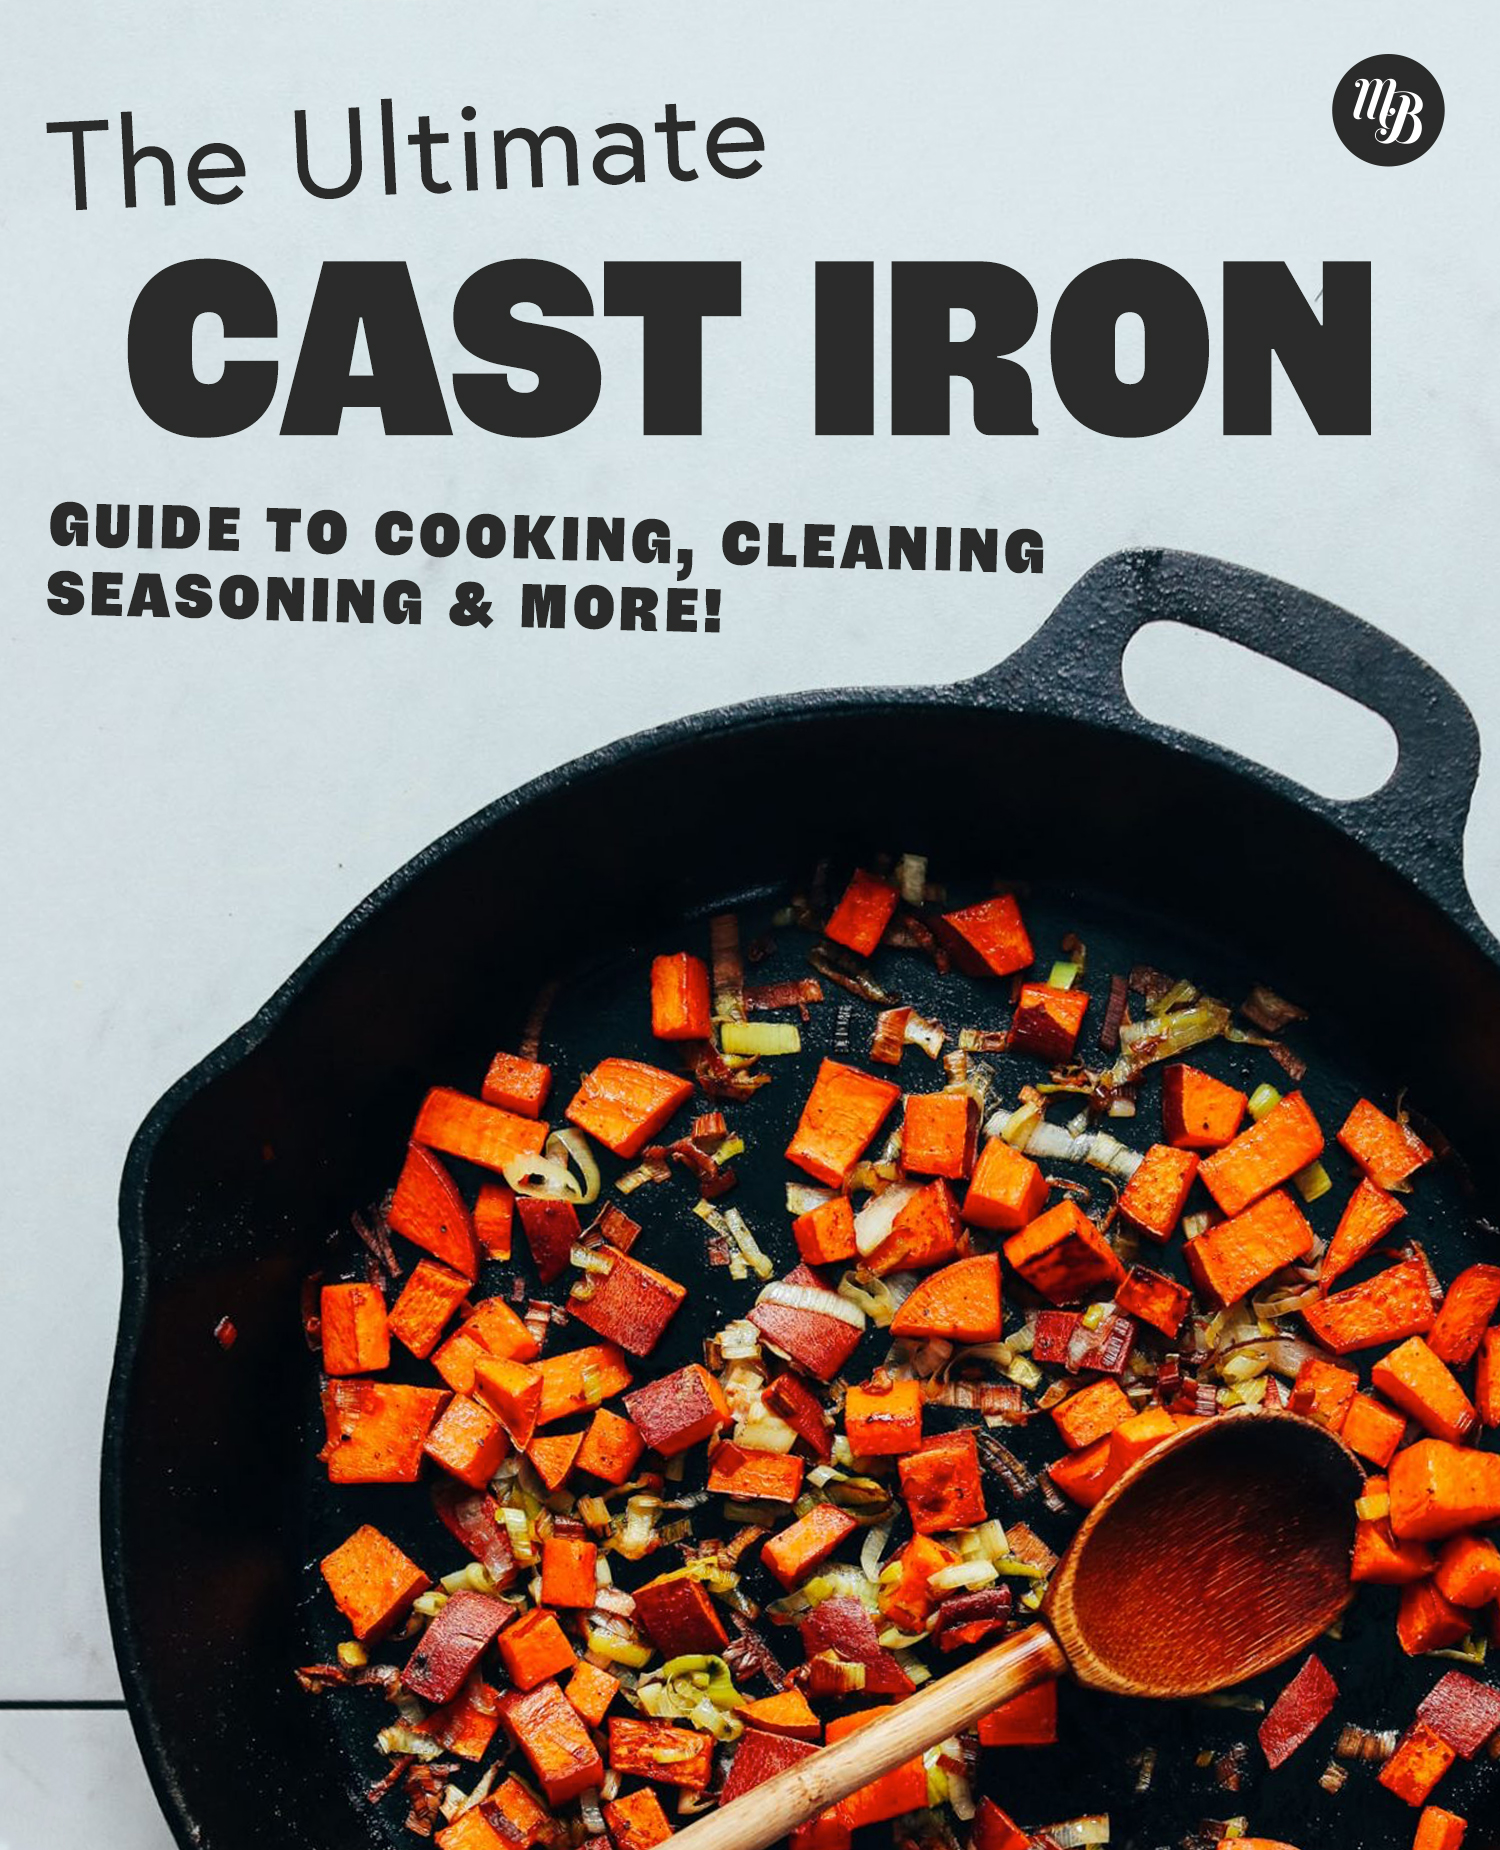 Vegetables in a cast-iron pan with text saying The Ultimate Cast Iron Guide to Cooking, Cleaning, Seasoning & More!